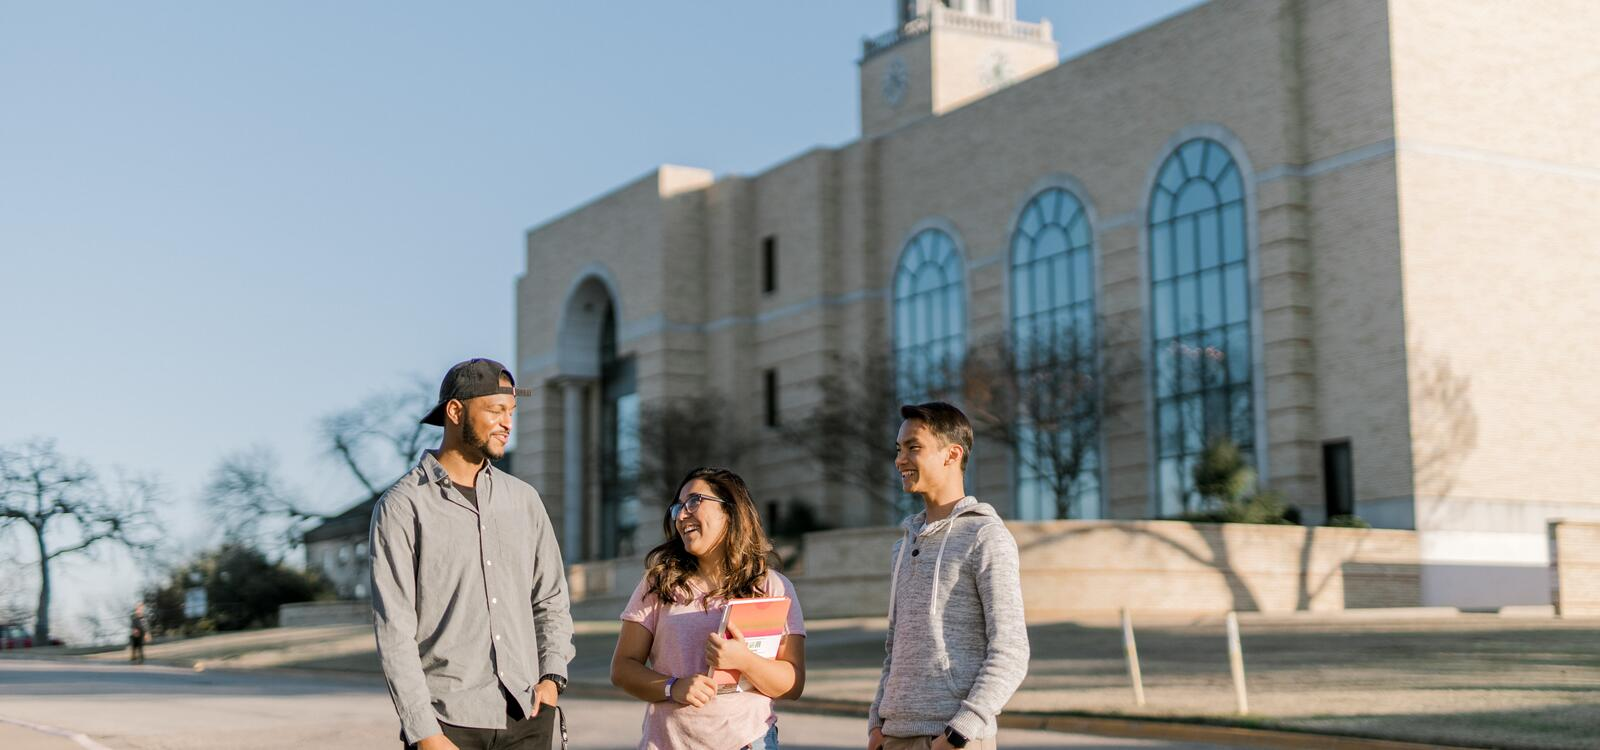 Standing outside in front of the library, three students stop to talk